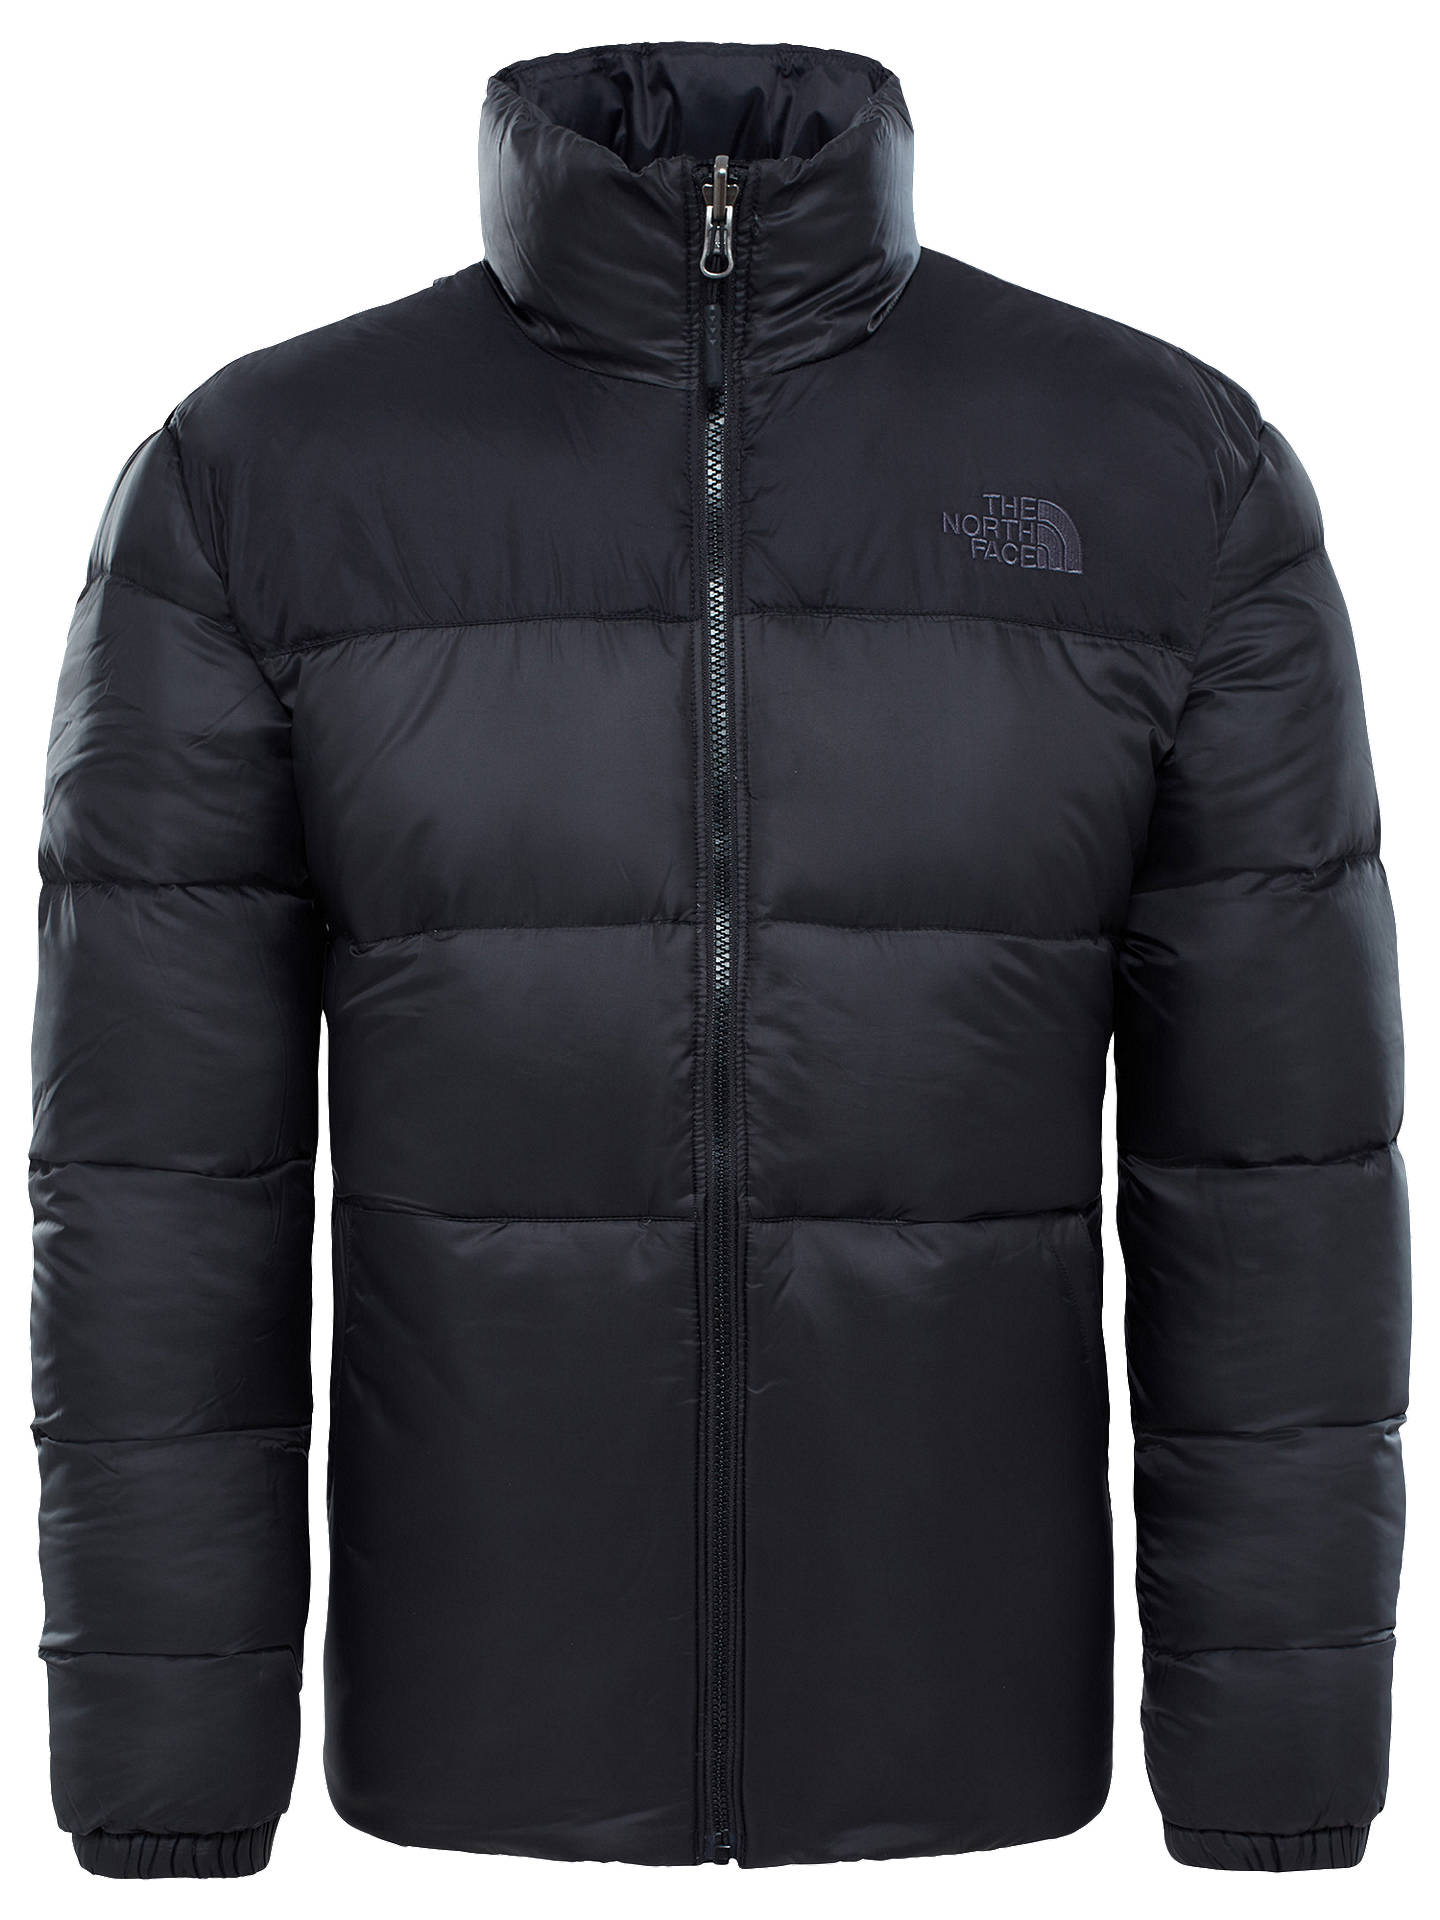 BuyThe North Face Nuptse 3 Men s Jacket ac0e7a2c0